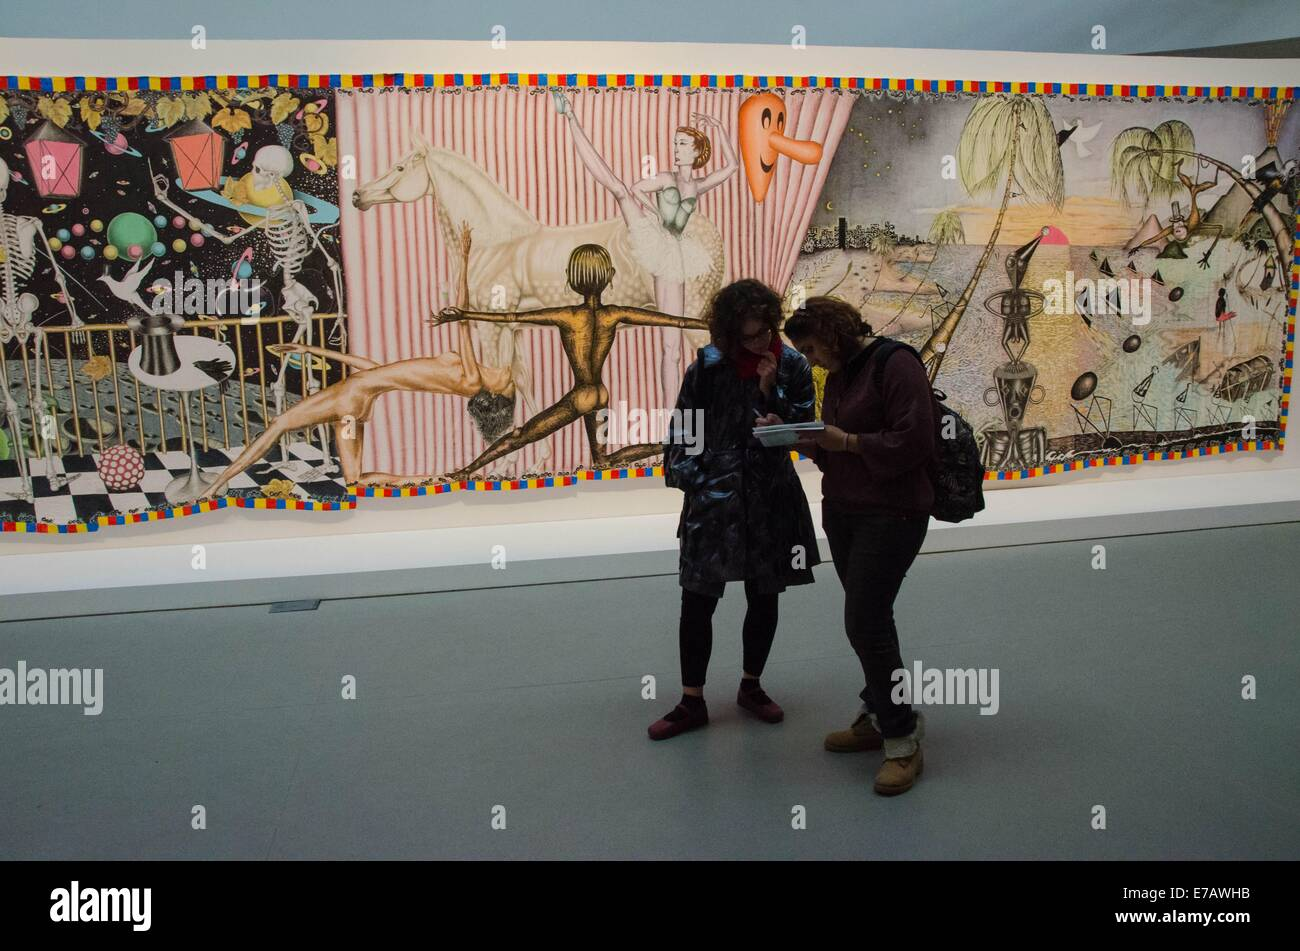 Venice Biennale 55th International Art Exhibition The Encyclopedic Palace at Giardini and Arsenale c - Stock Image